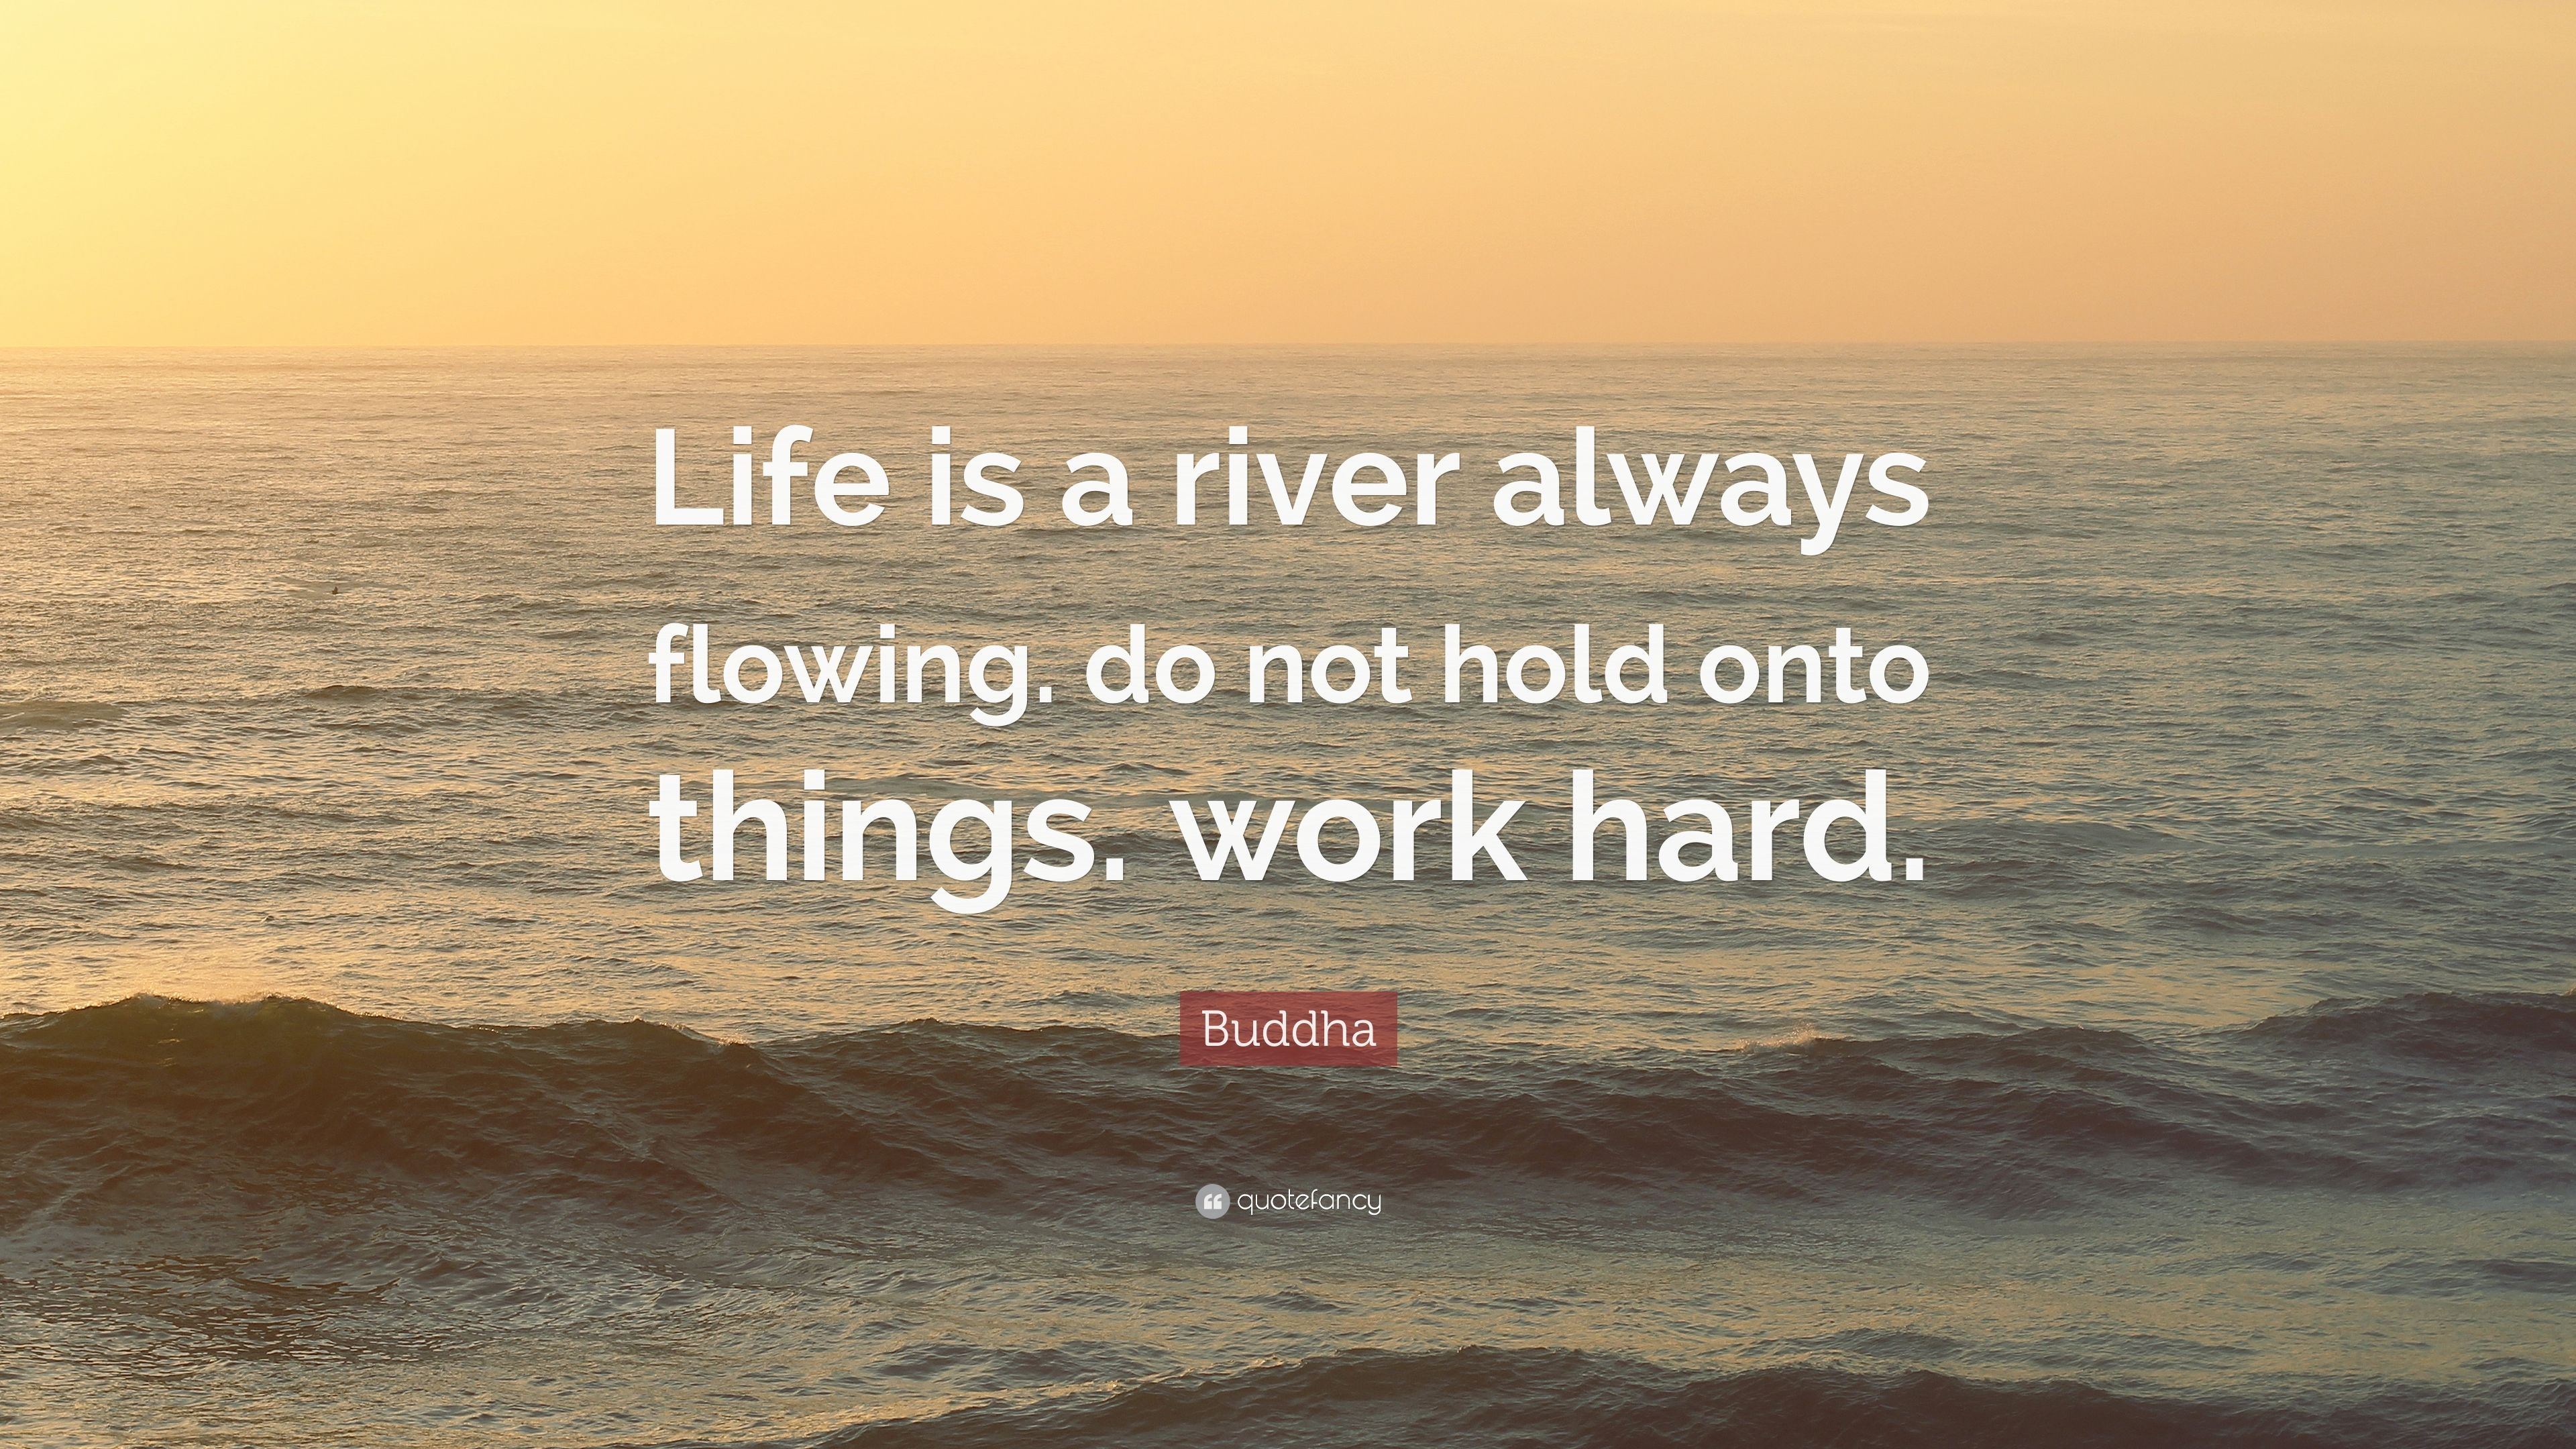 Buddha Quote Life Is A River Always Flowing Do Not Hold Onto